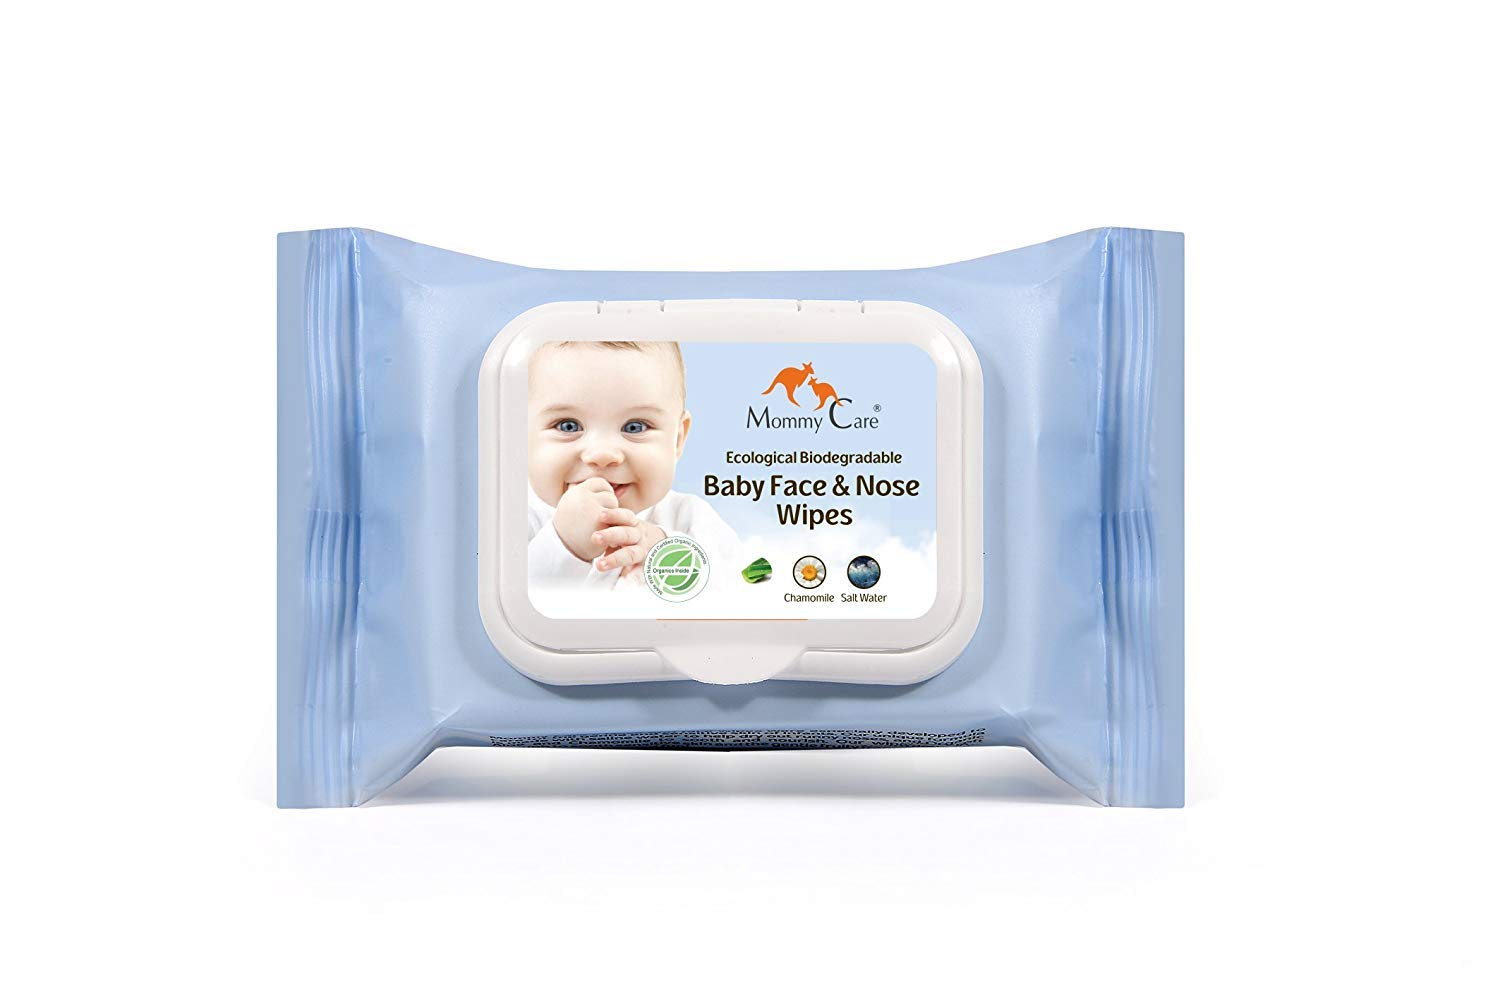 Mommy Care Biodegradable Organic Baby Face & Nose Wipes – SLS and Paraben Free Gently Fragranced Natural Cleaning Formula Perfect for Baby's Sensitive Skin. Great as Hand Sanitizer 24 count